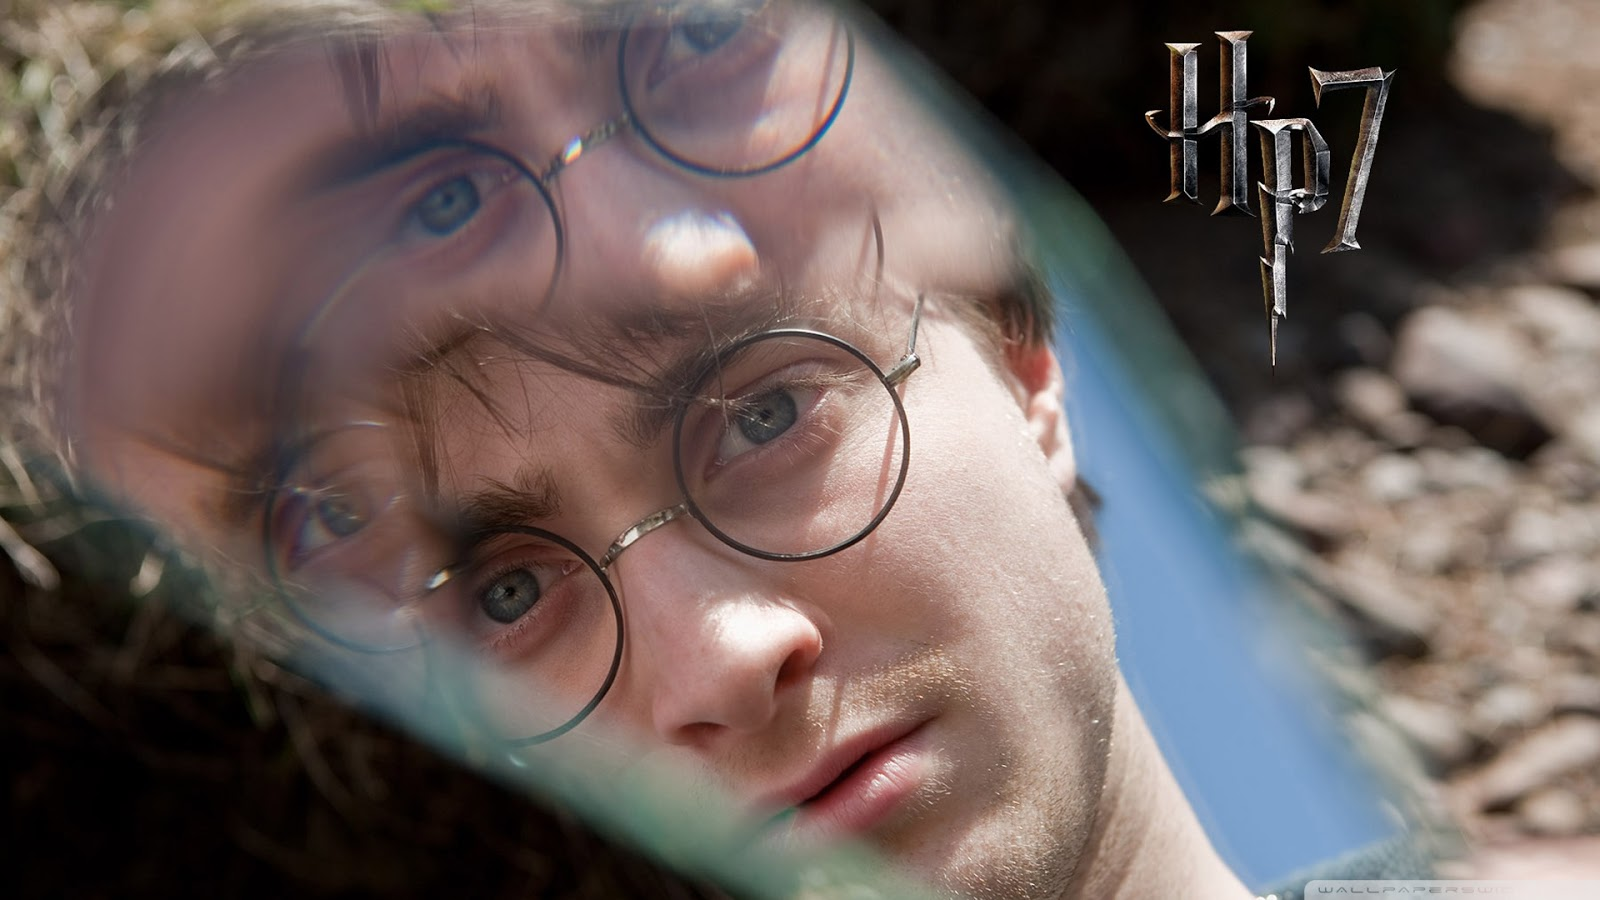 Daniel Radcliffe as Harry Potter Deathly Hallows Wallpaper